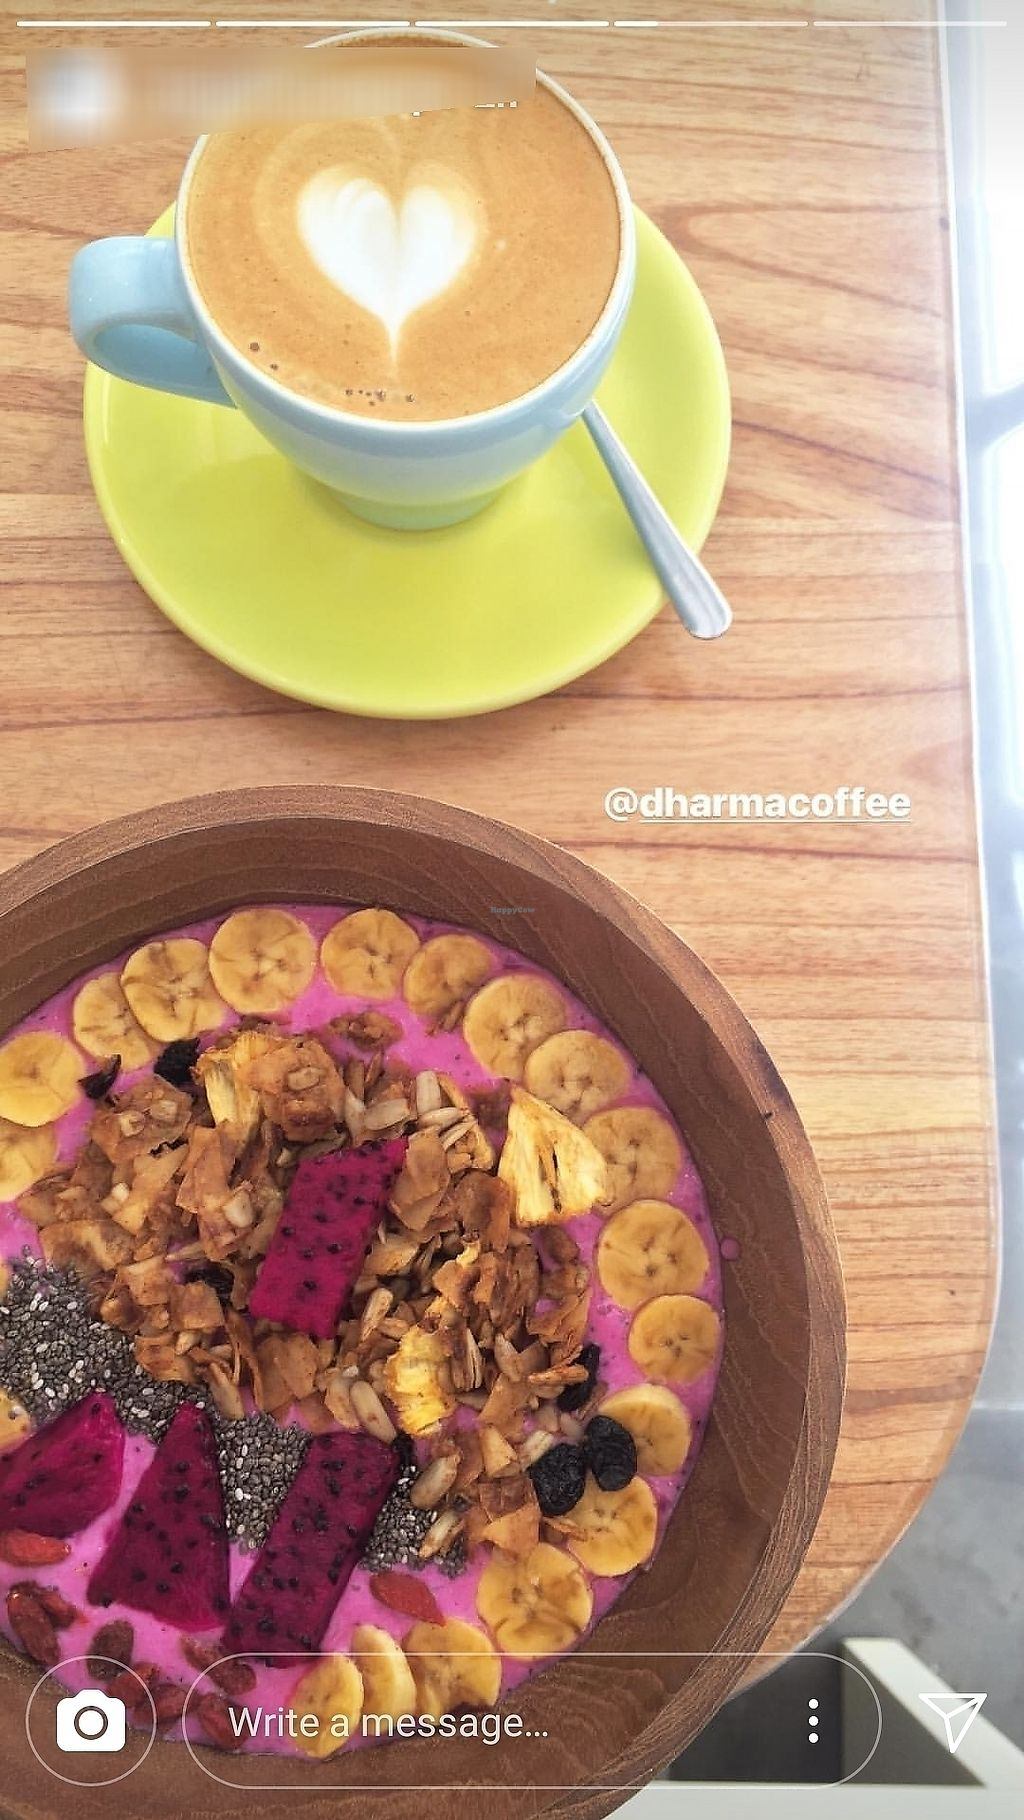 """Photo of Dharma Coffee & Juice  by <a href=""""/members/profile/TorkisNasoetion"""">TorkisNasoetion</a> <br/>Good Coffee and Delicious Smoothie Bowl <br/> March 31, 2018  - <a href='/contact/abuse/image/115176/378593'>Report</a>"""